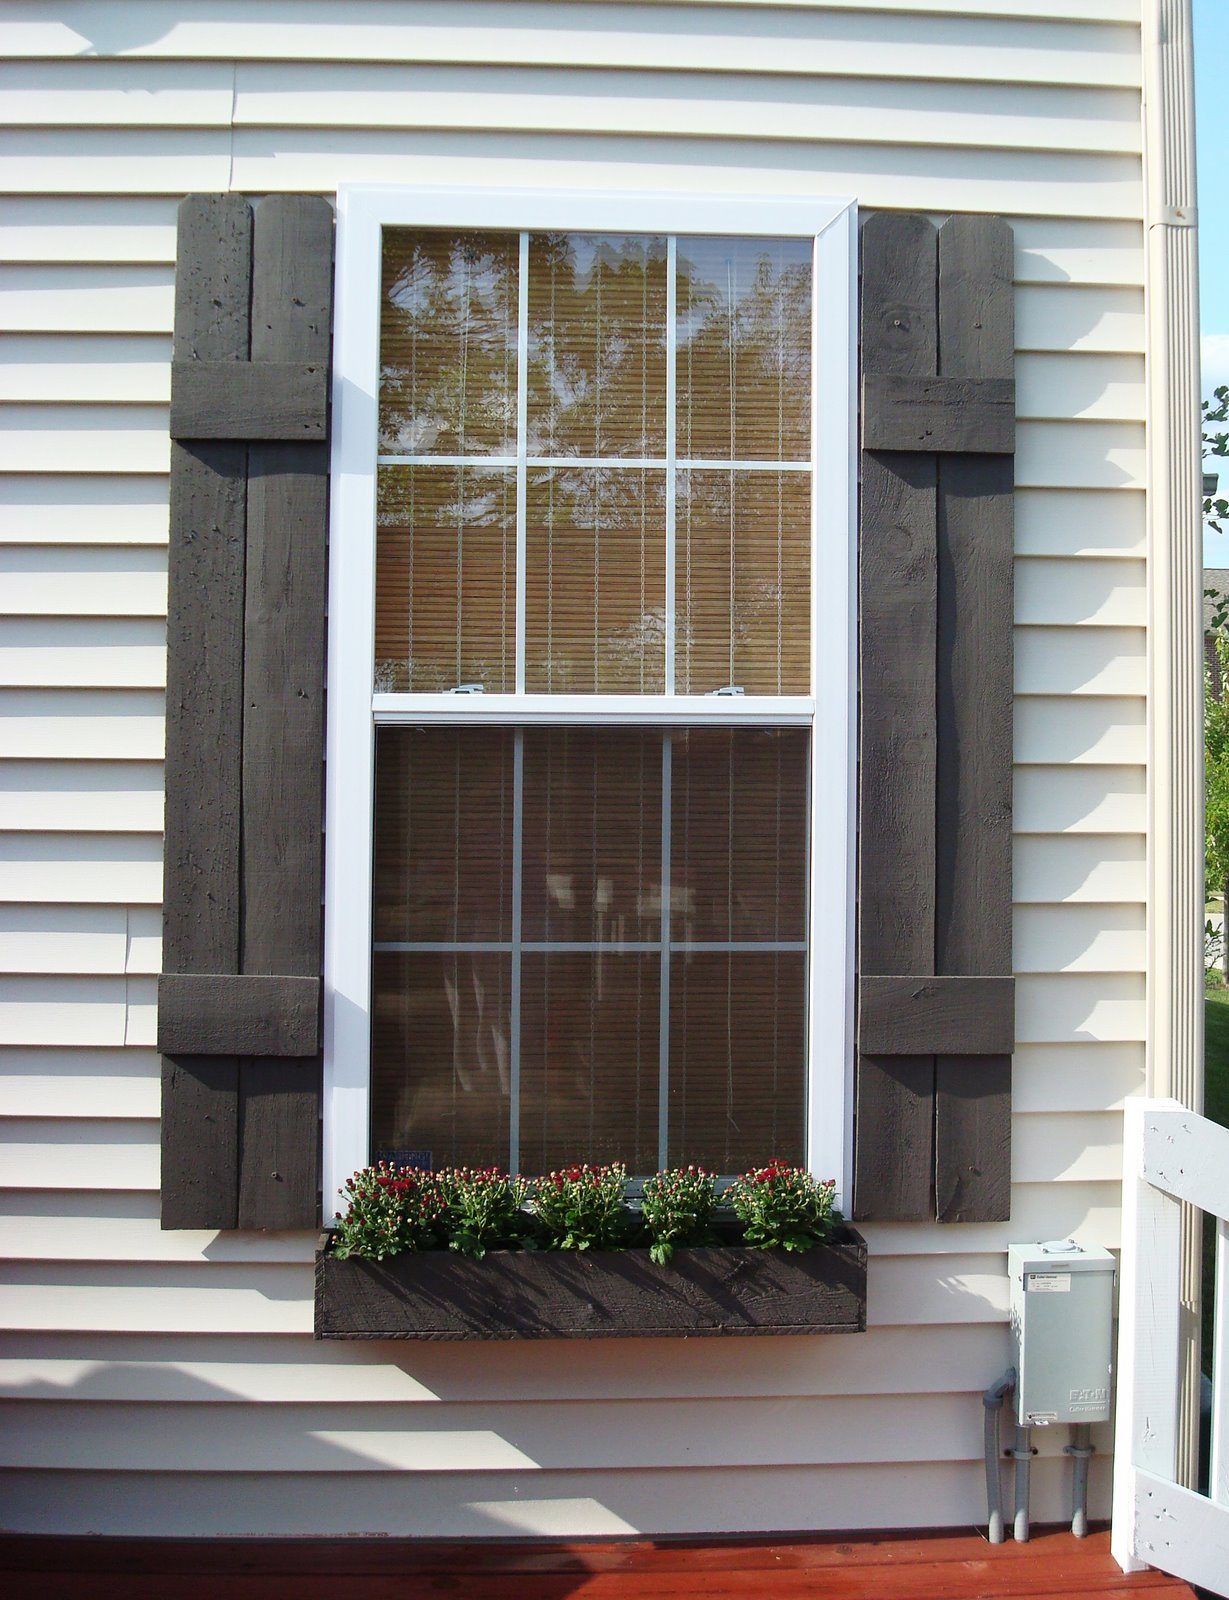 Exterior Home Windows exterior home windows awesome house design image 004 exteriors 13 Exterior Shutters How To Build Shutters And Window Boxes Thrifty Decor Chick